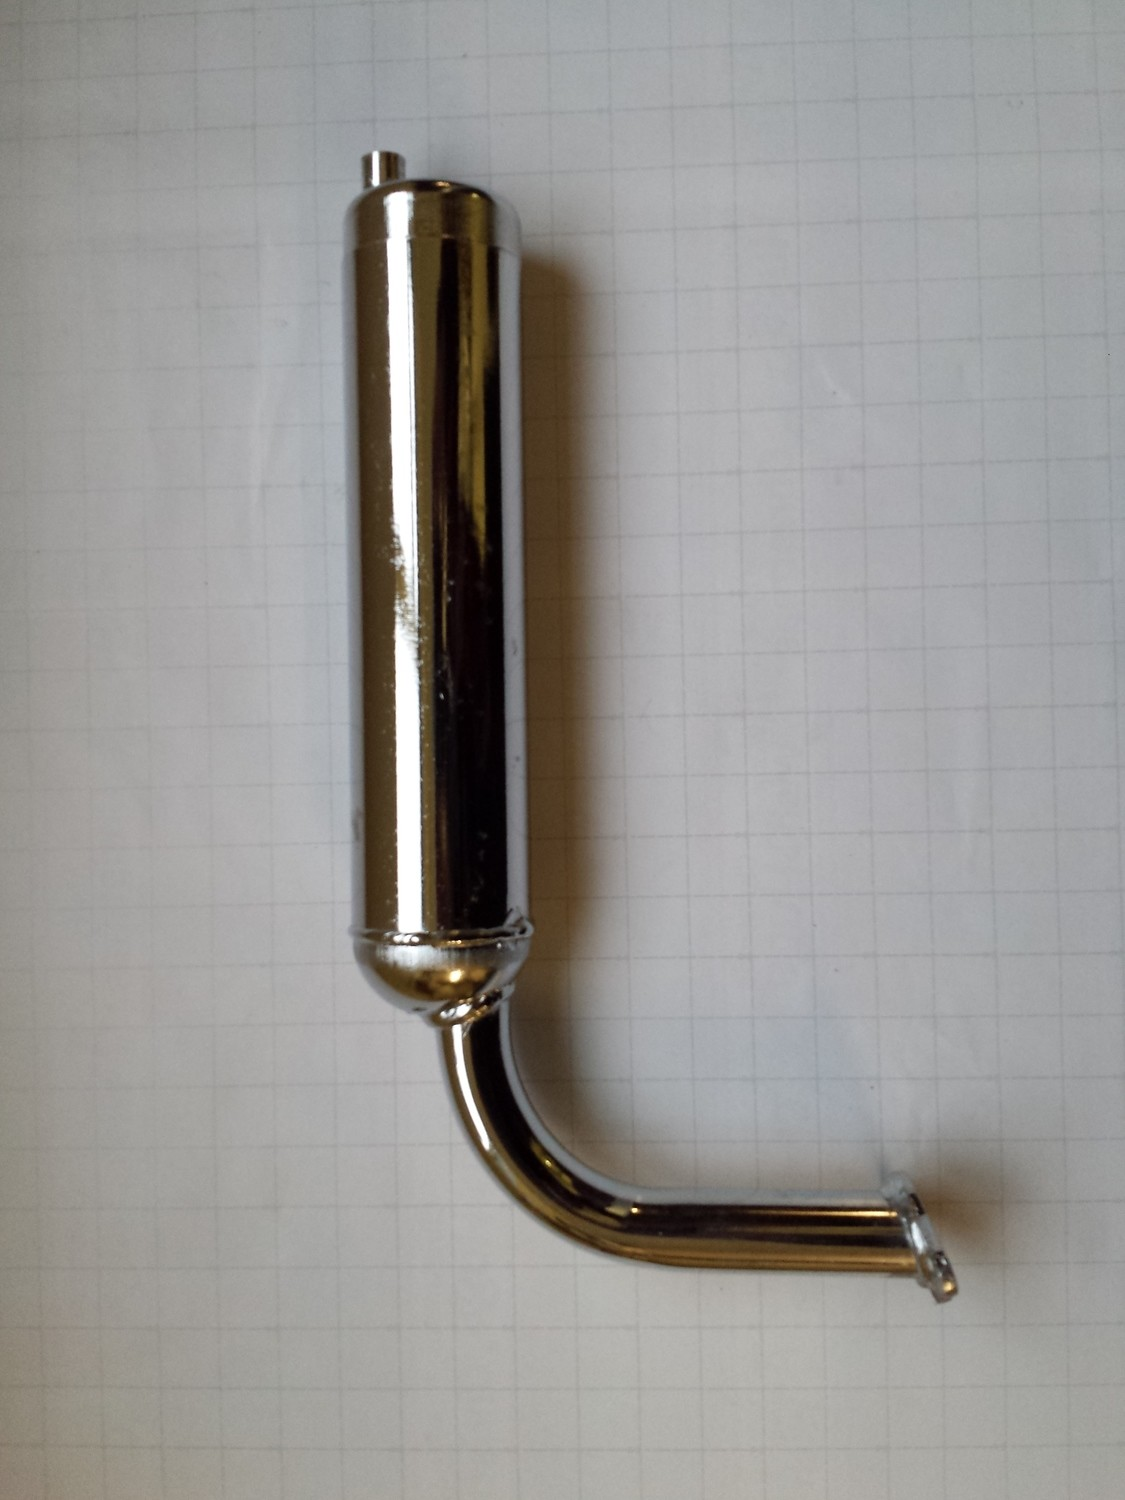 PBE exhaust pipe